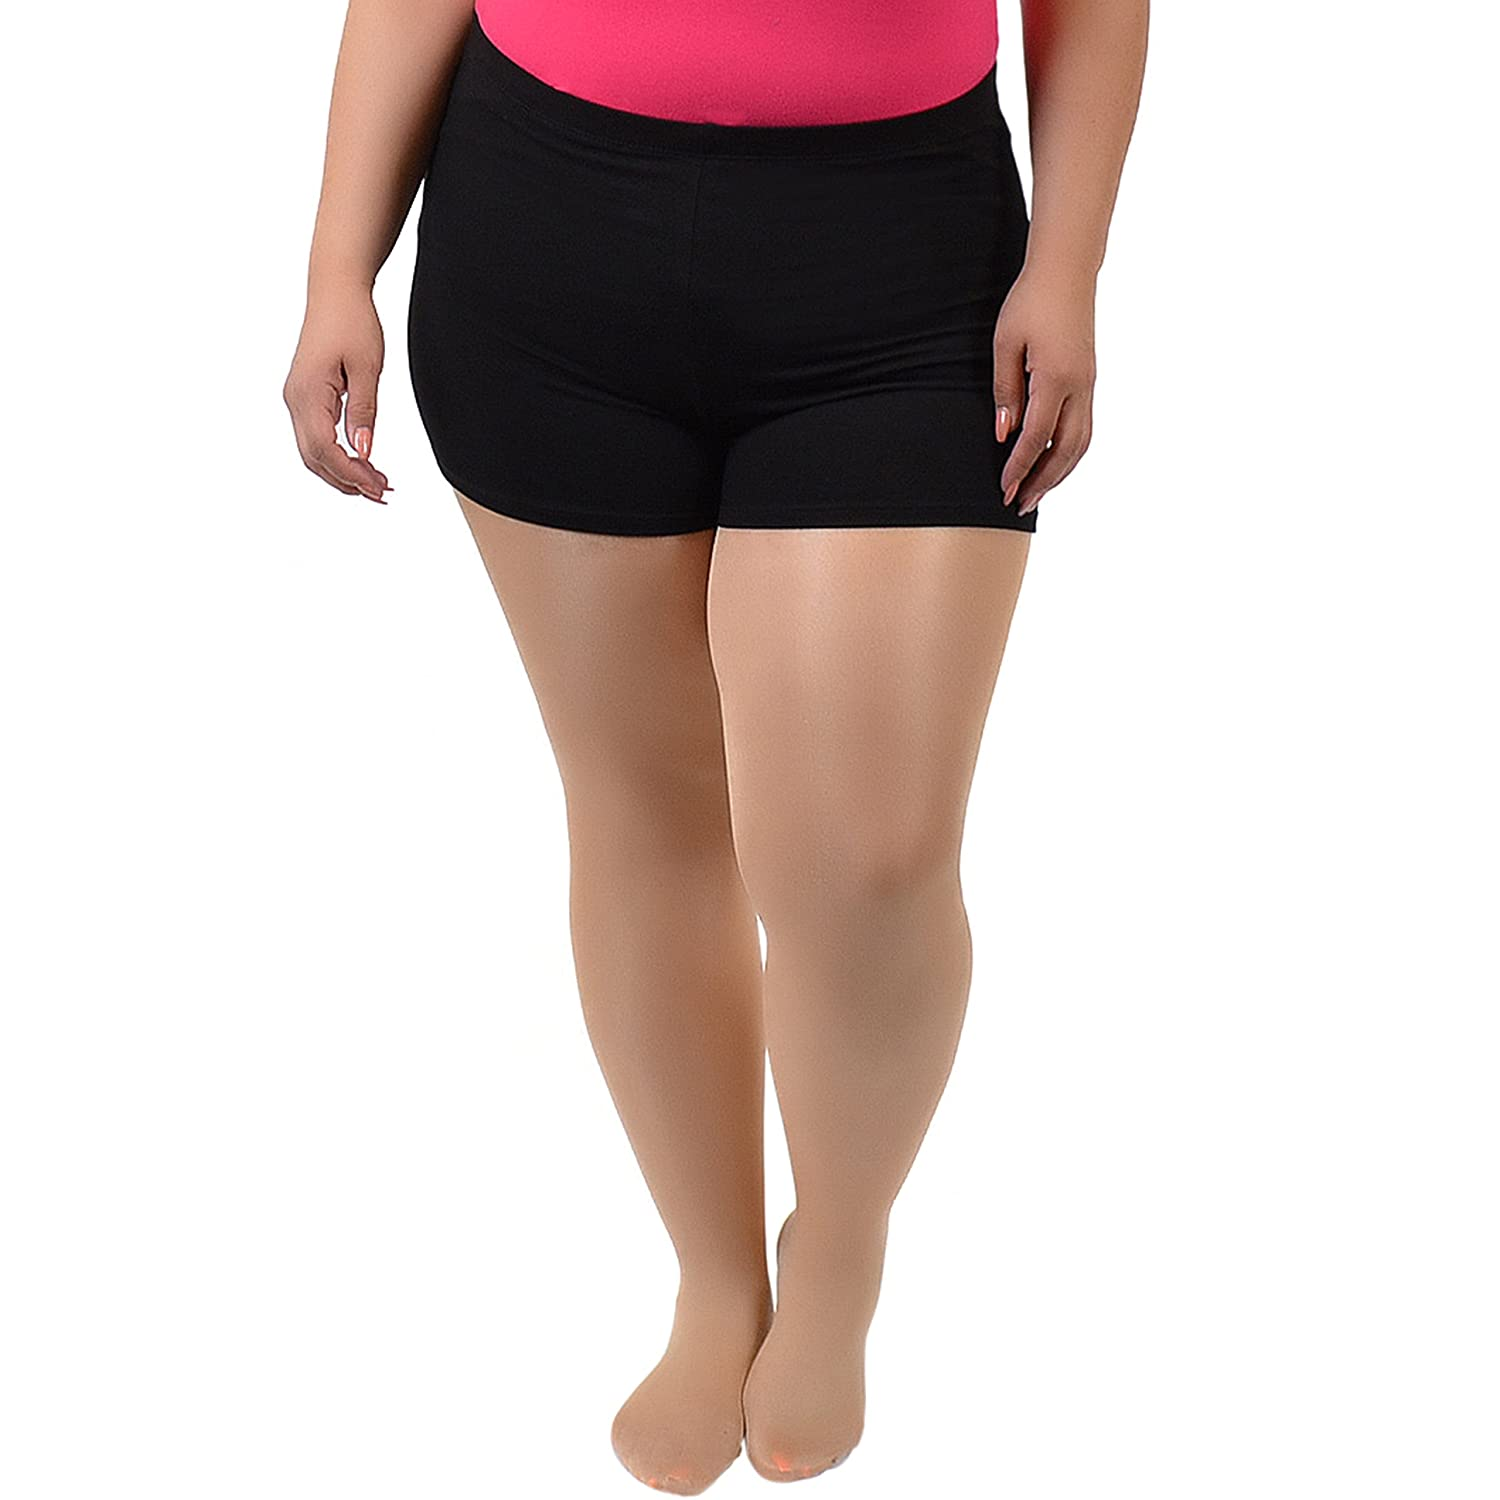 Stretch is Comfort Women's Teamwear COTTON Stretch Booty Shorts S3050A-$P